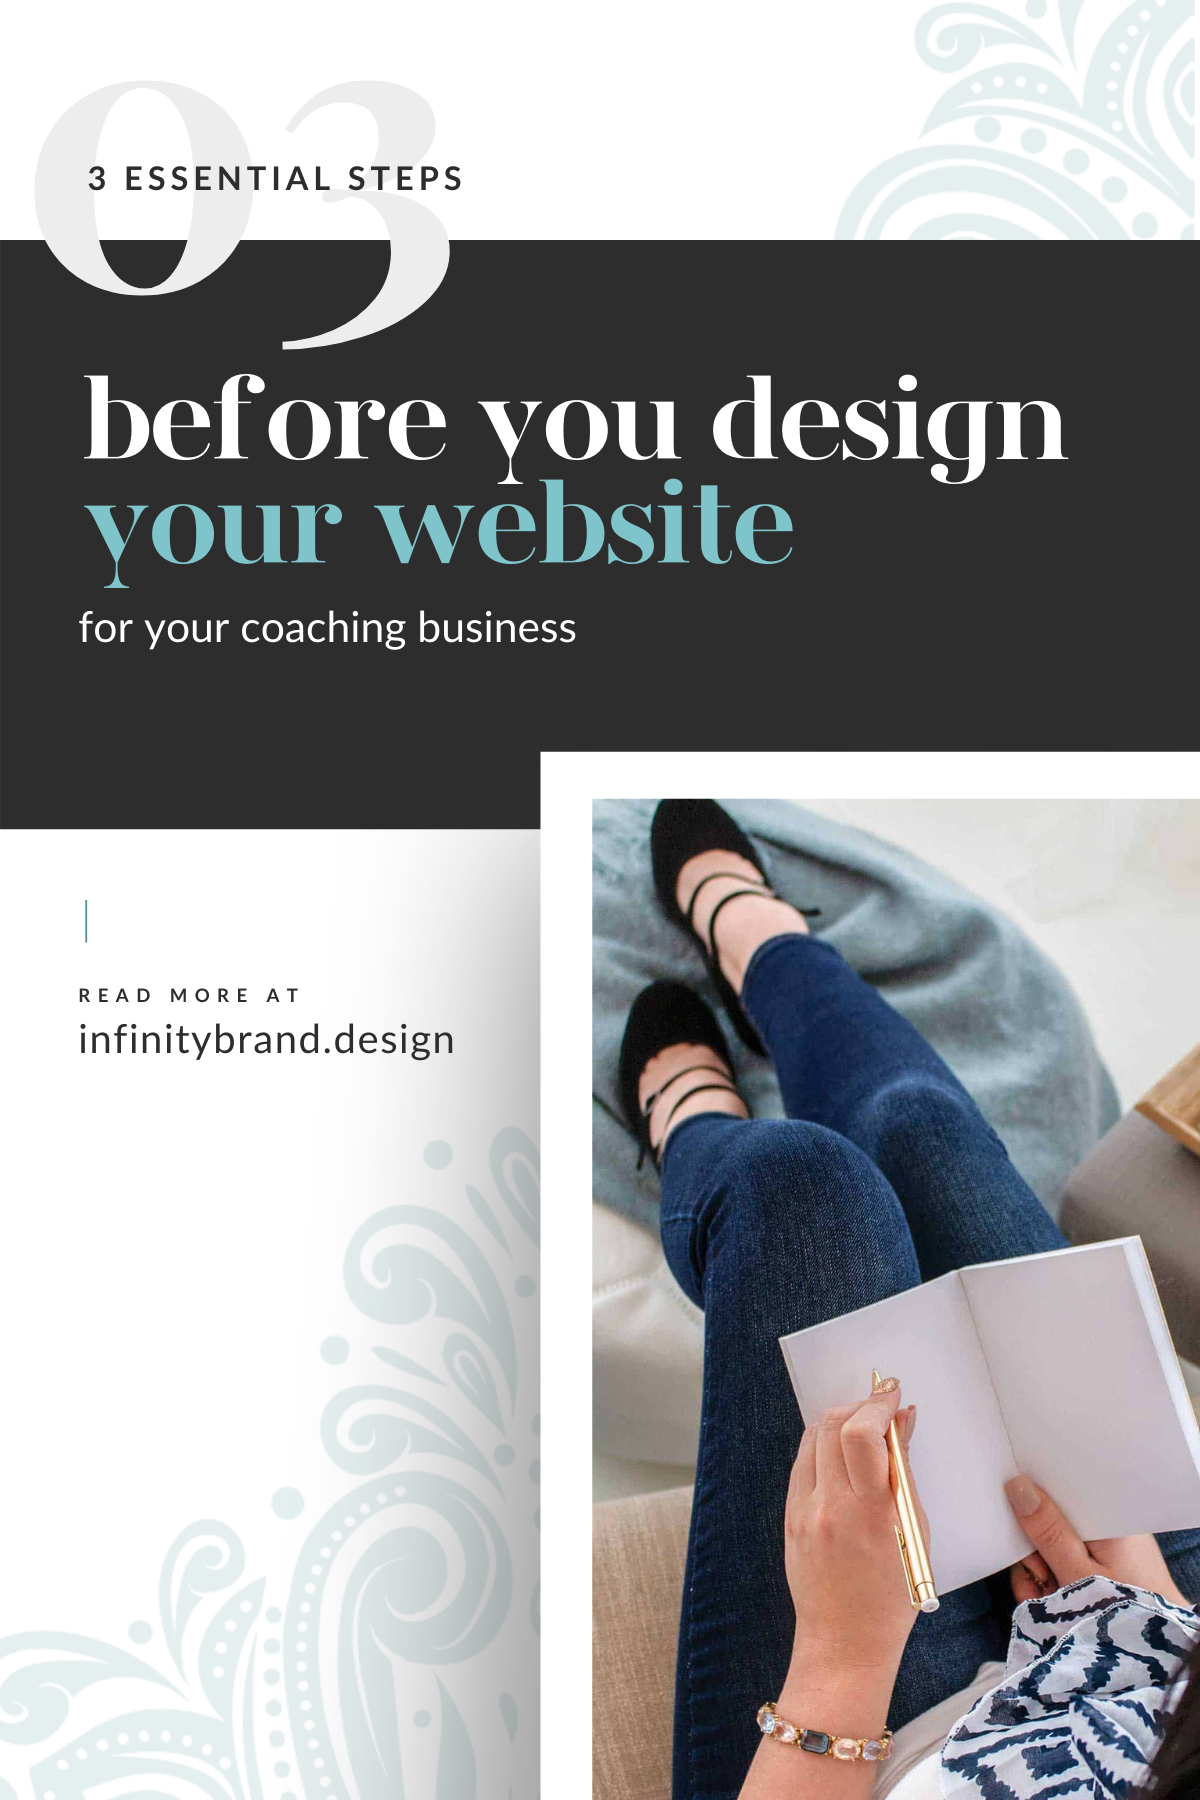 Having a strategy in place before you embark on your new website can prevent wasting thousands of dollars replicating an existing website and making the same mistakes. In this post, you'll learn the 3 important questions you need to answer before spending a dime on your new website.